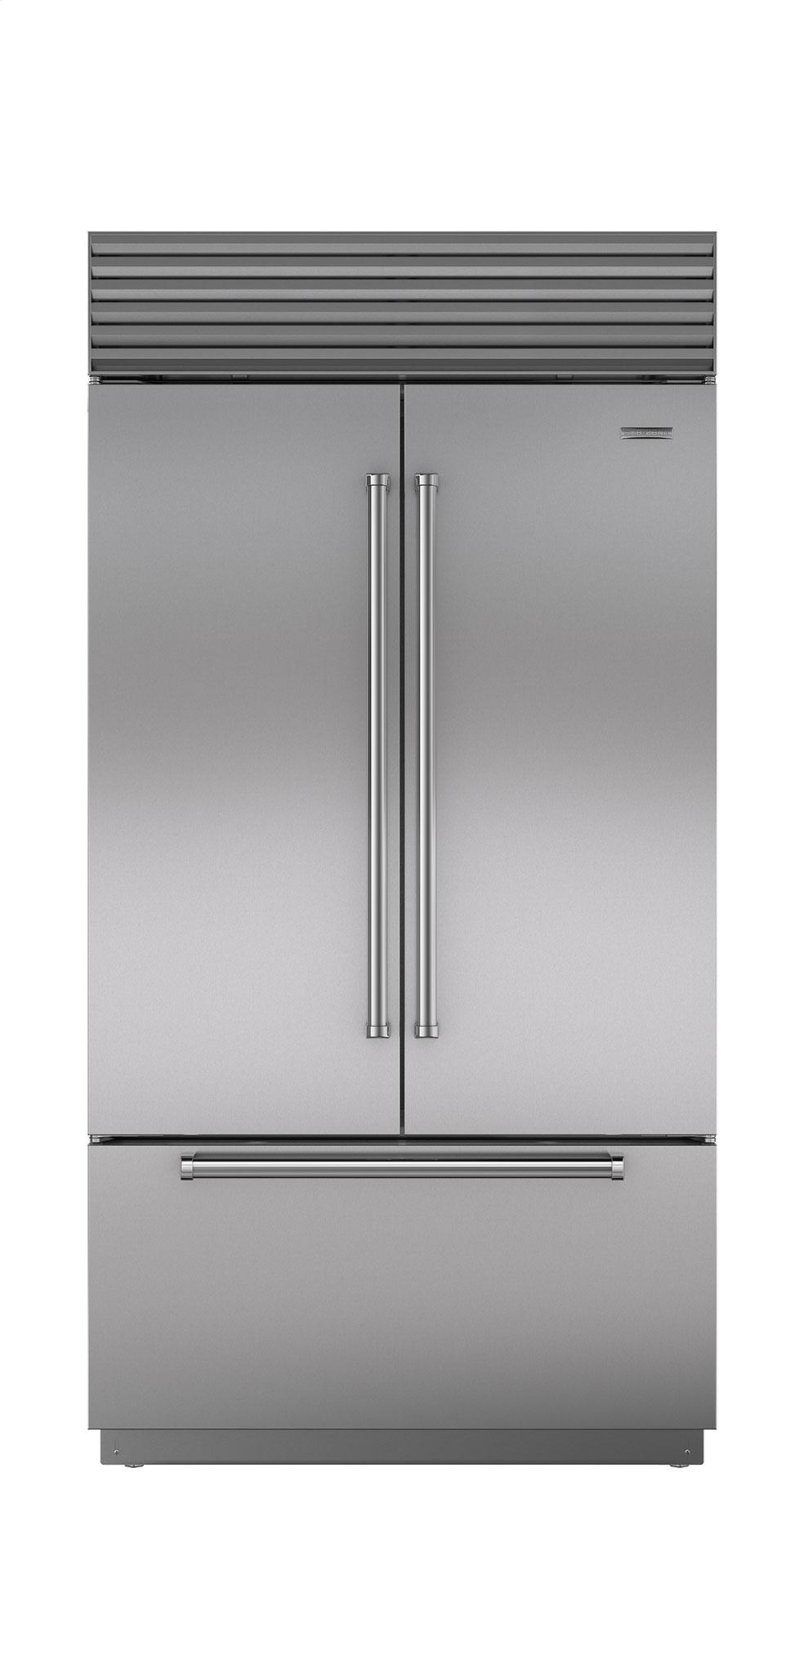 door aid at refrigerator in built steel kitchen cu doors width appliance us appliances stainless ft french